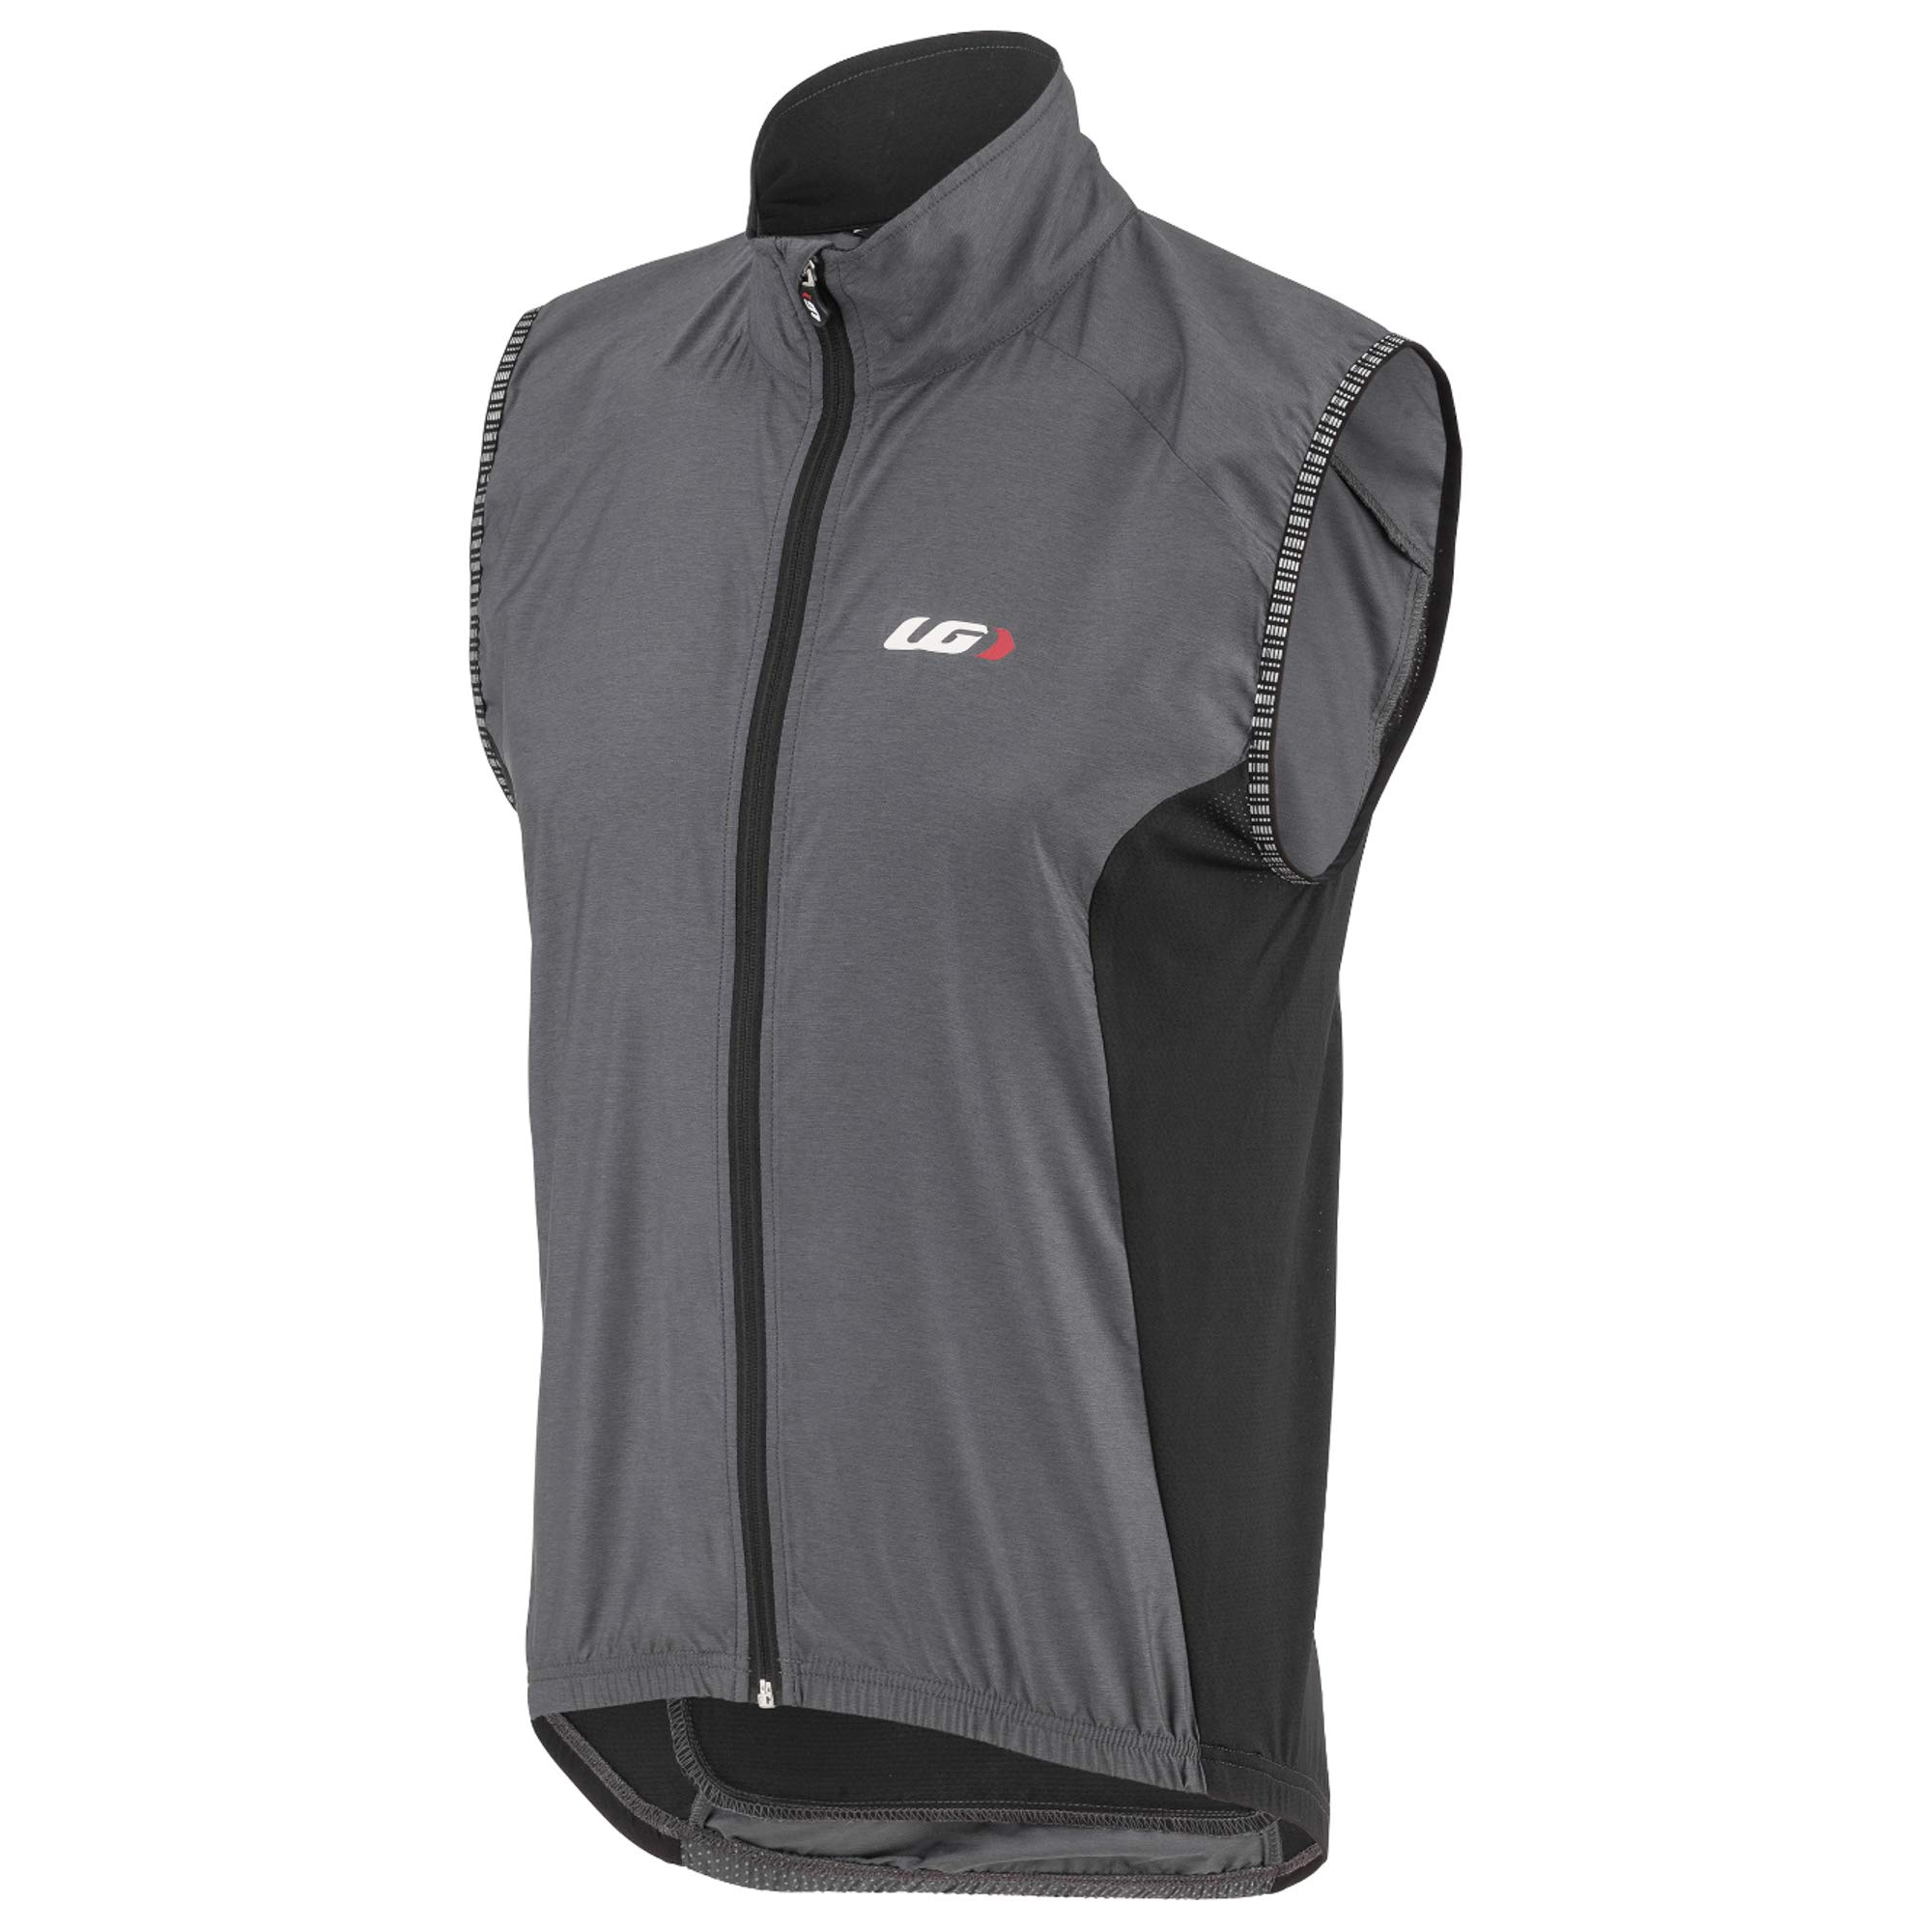 Louis Garneau Men's Nova 2 Bike Vest, Gray/Black, Small by Louis Garneau